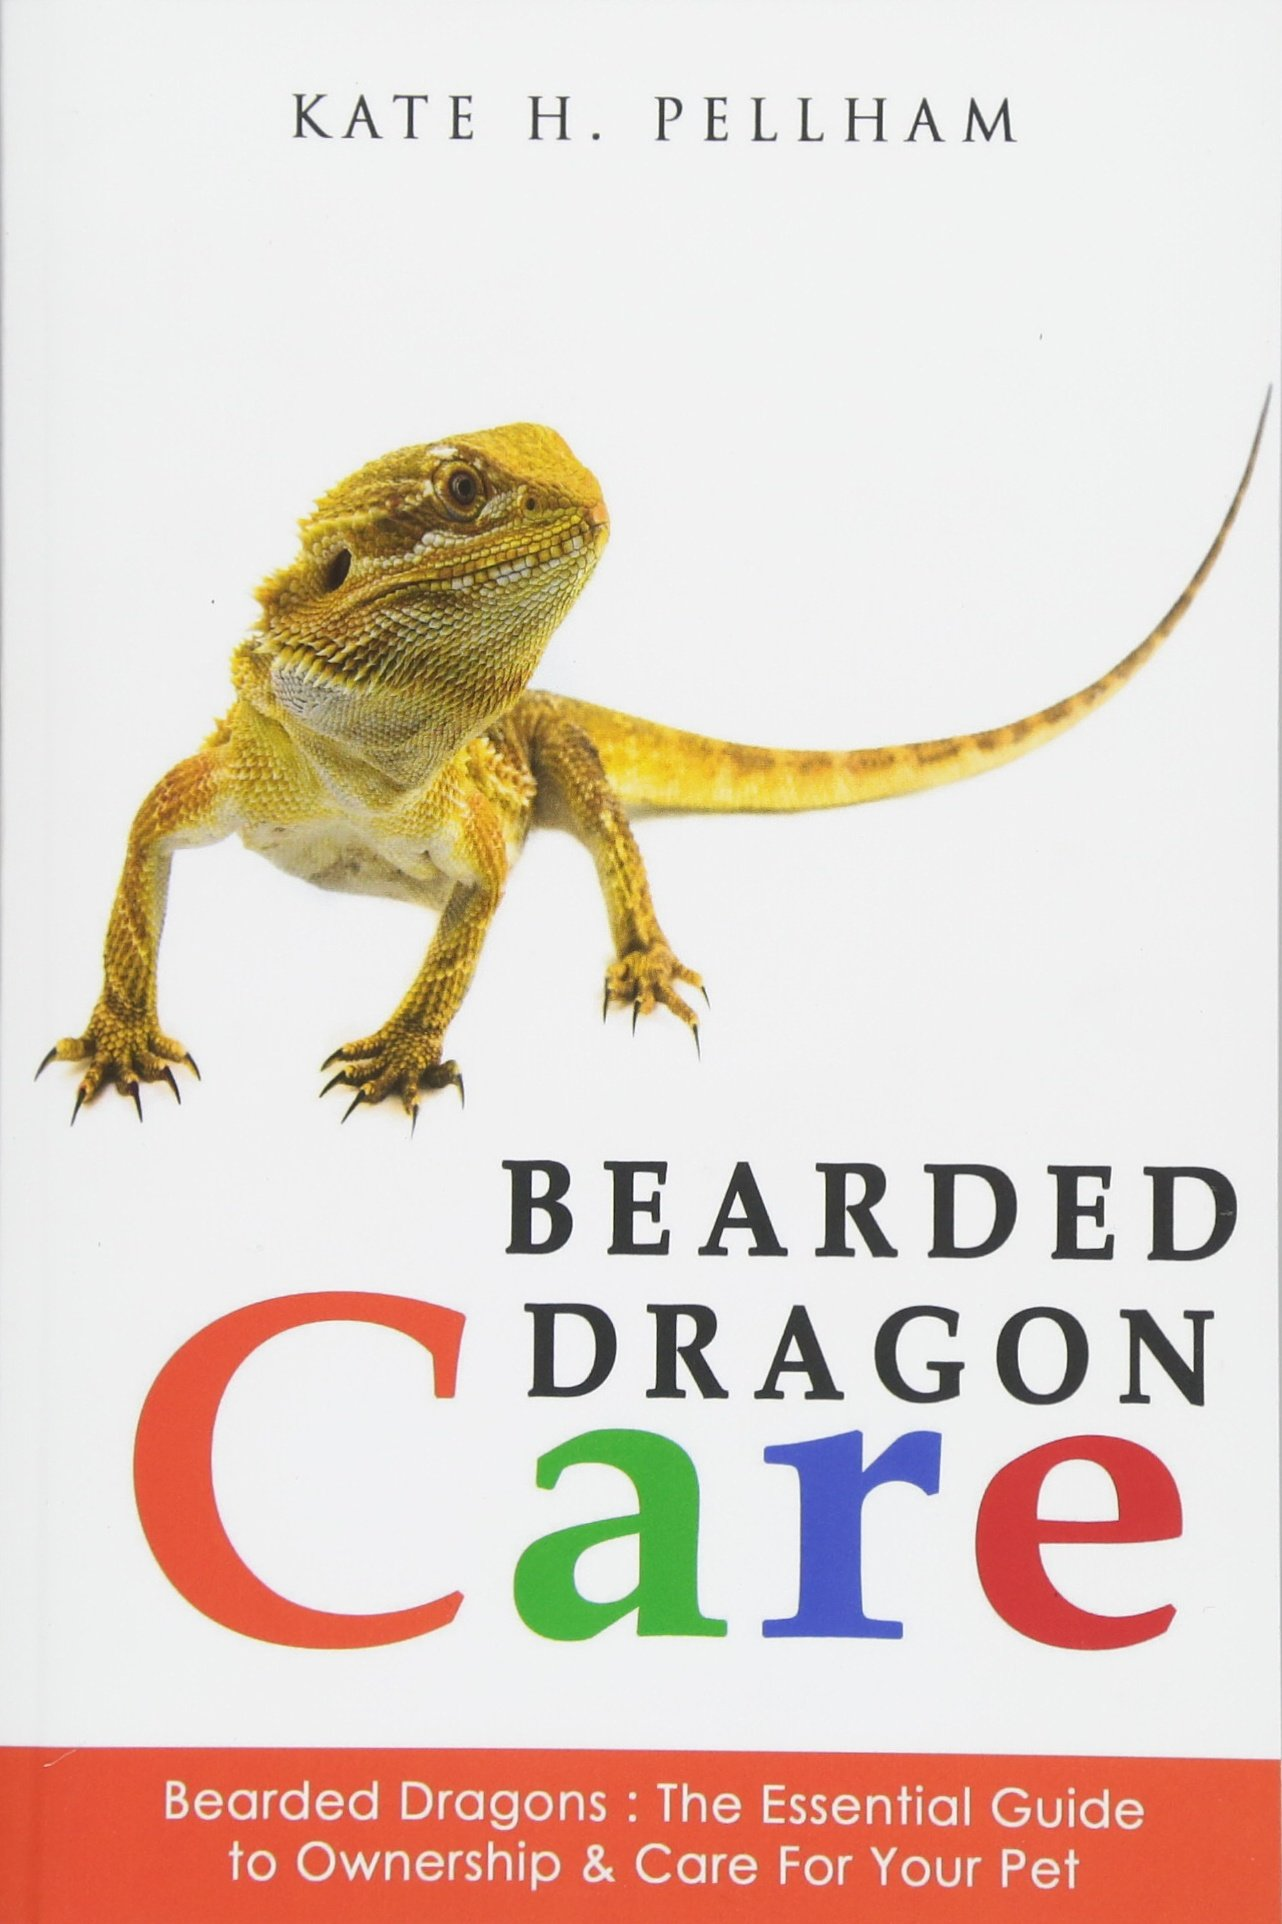 Bearded Dragons: The Essential Guide to Ownership & Care for Your Pet (Bearded Dragon Care)